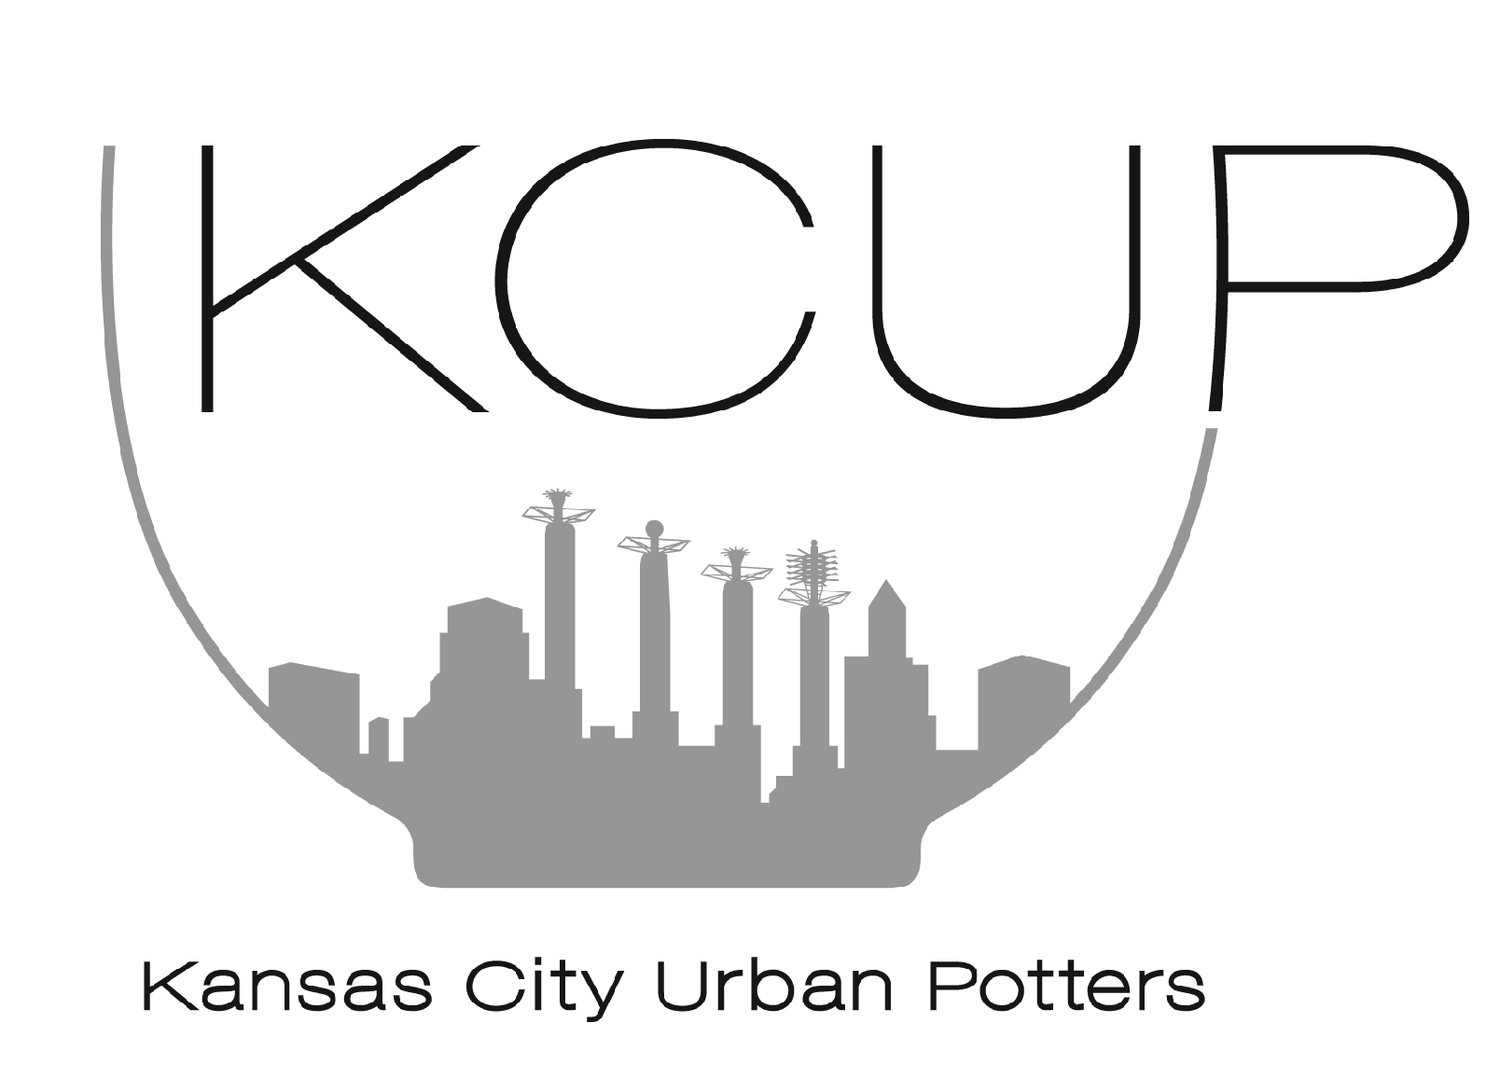 Kansas City Urban Potters